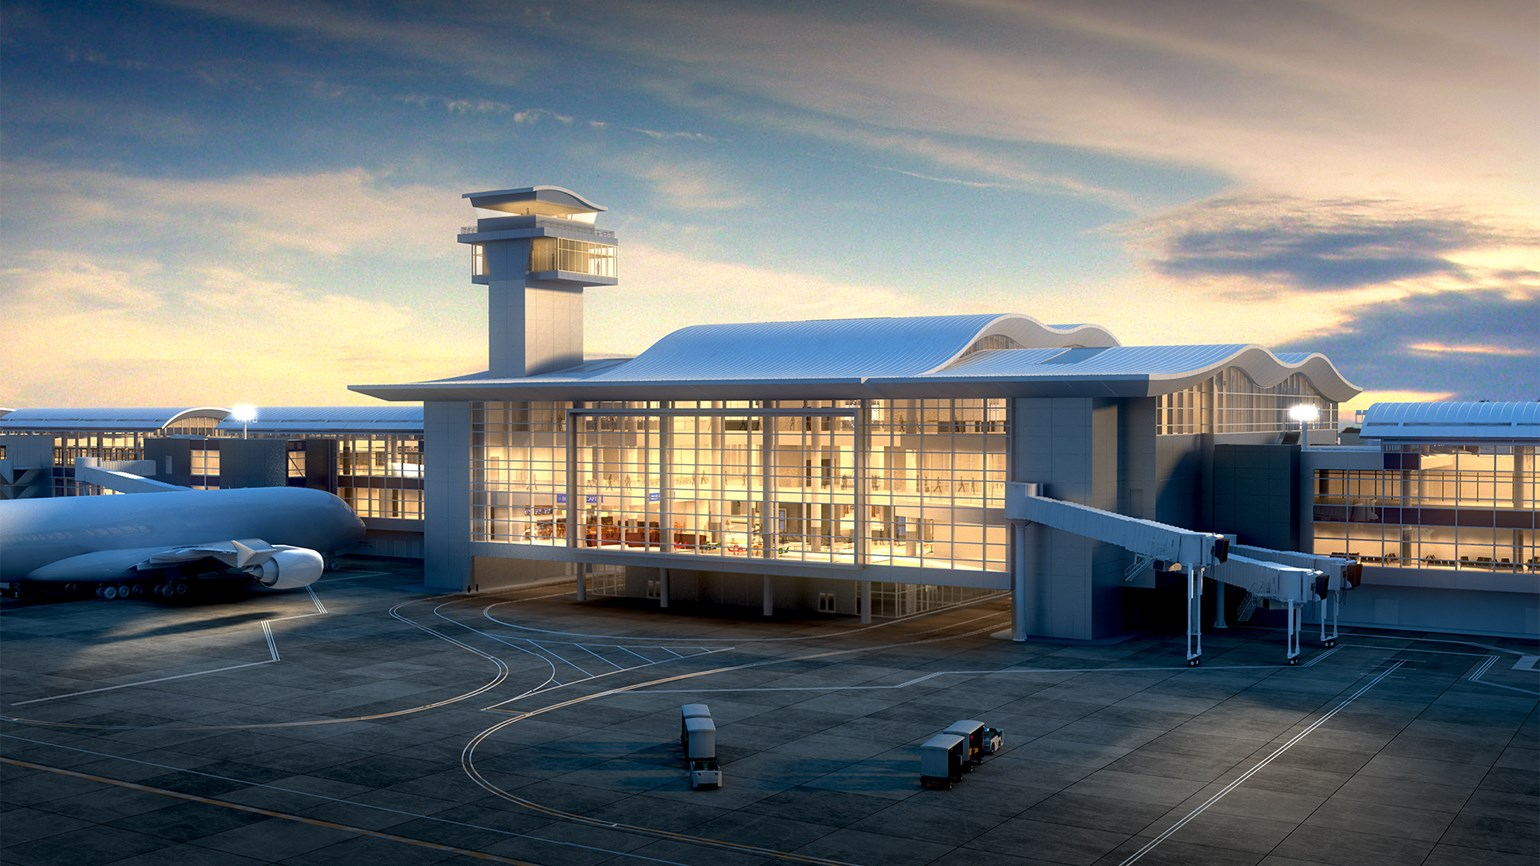 Ground broken on Bradley extension at LAX